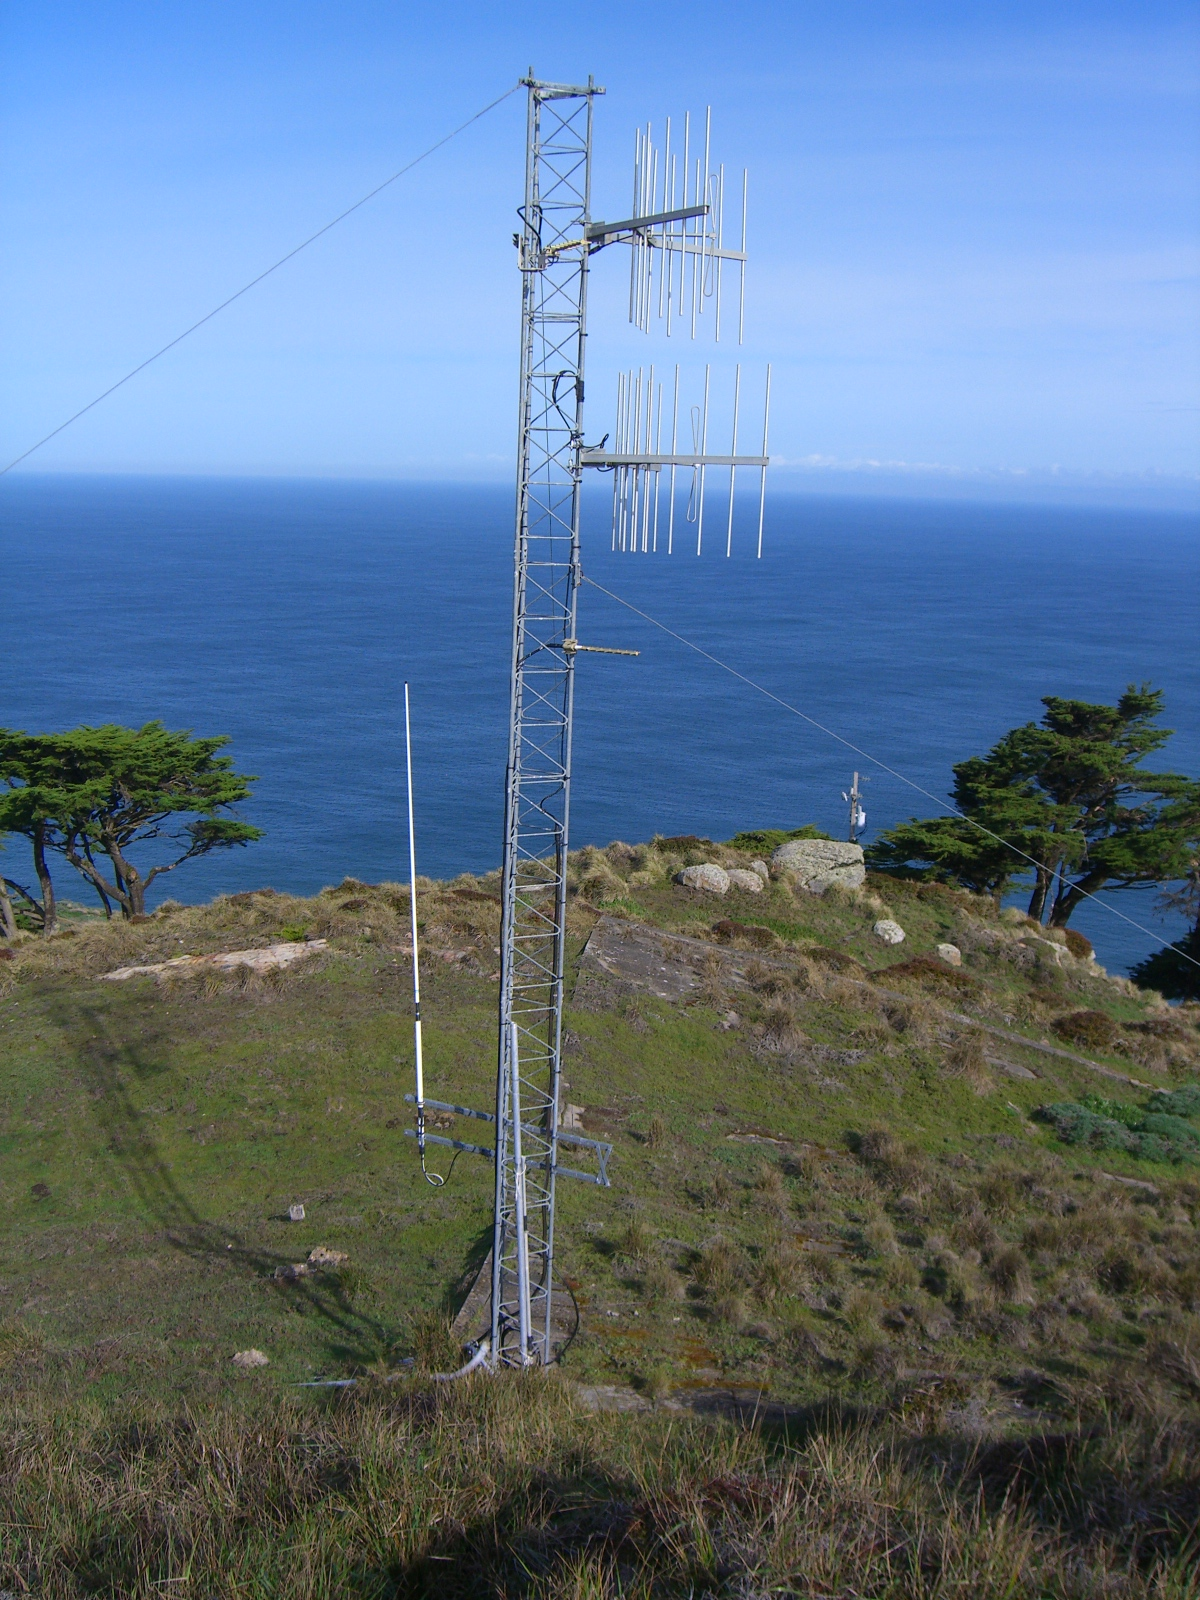 Shore station antenna at lower left